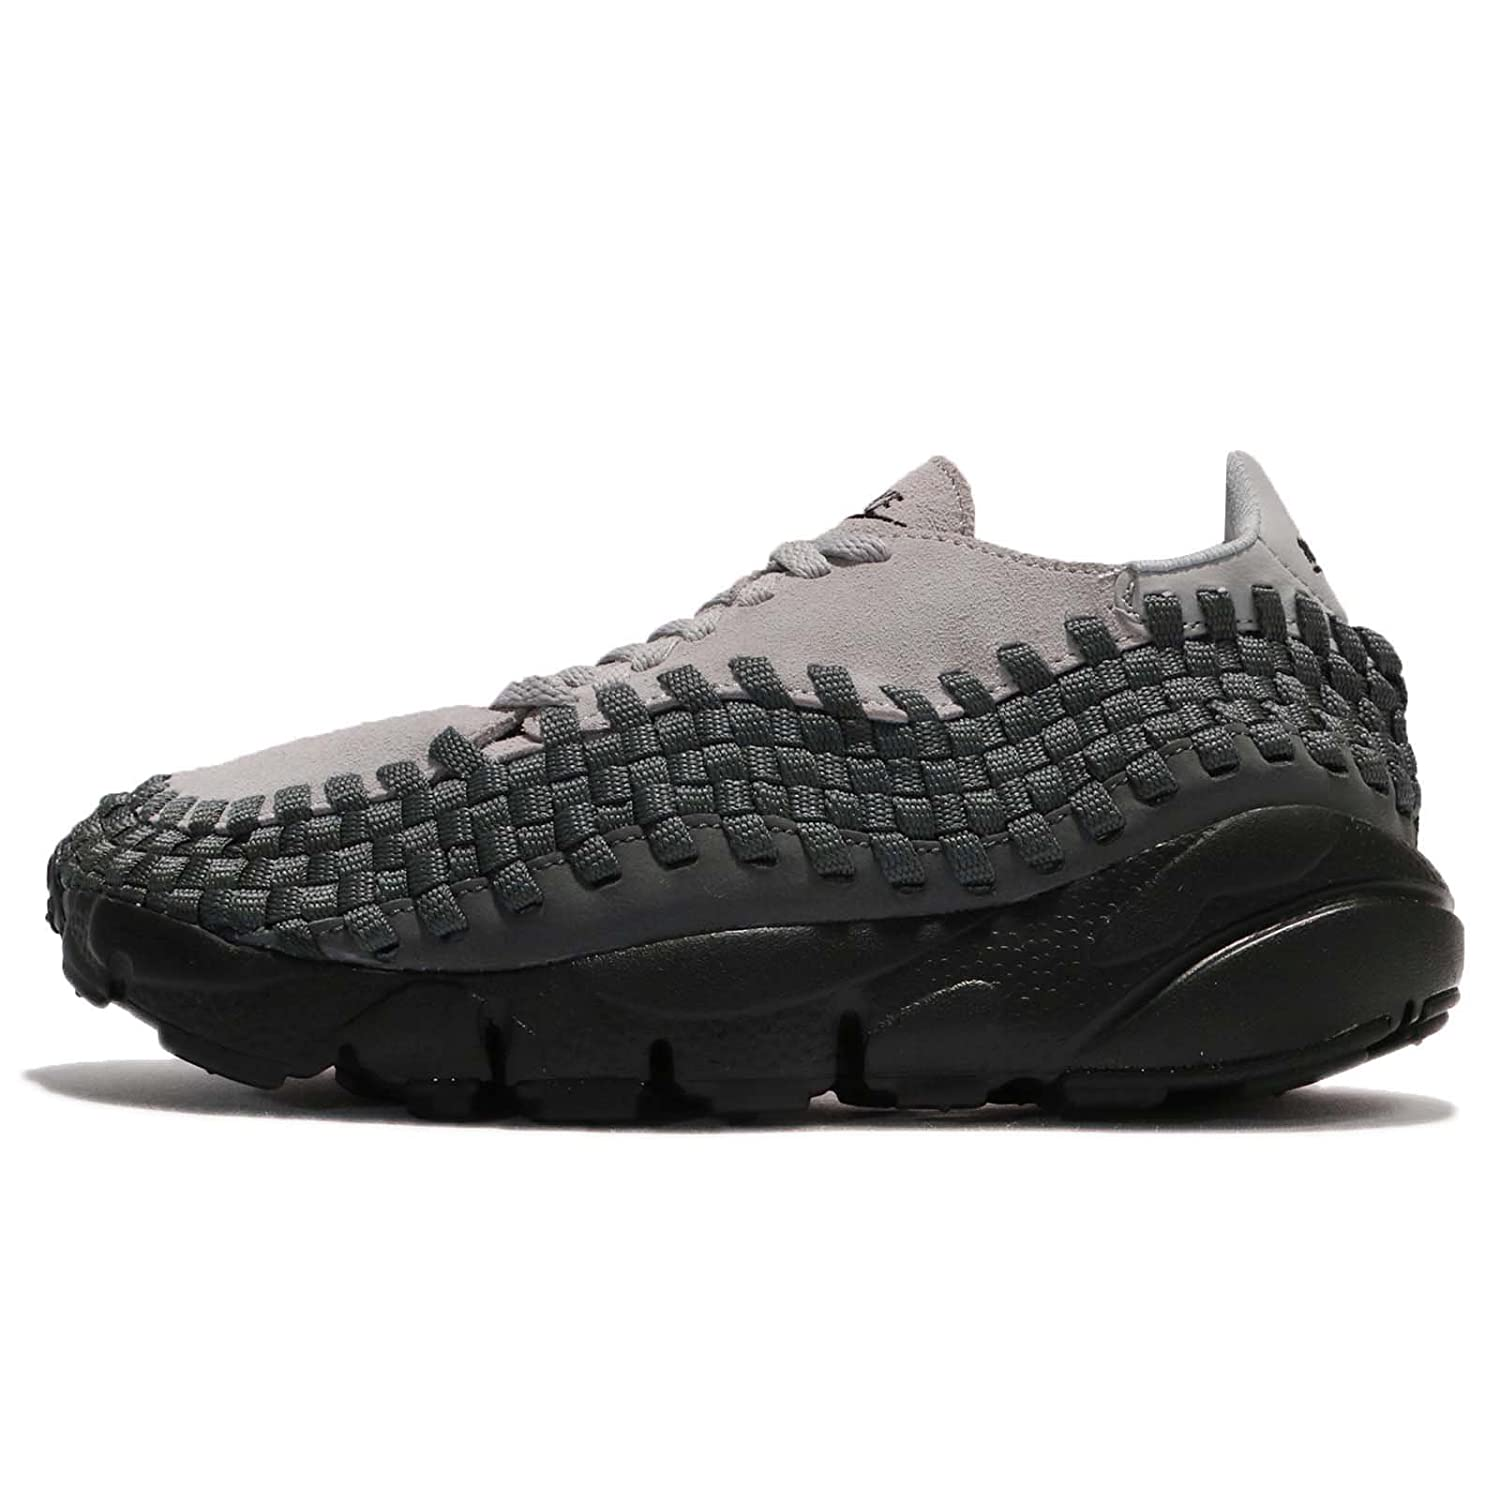 Mr/Ms Nike Women's Wmns Air Footscape reputation Woven, WOLF GREY/BLACK-DARK GRAY Good world reputation Footscape New in stock business WV13982 2a9099